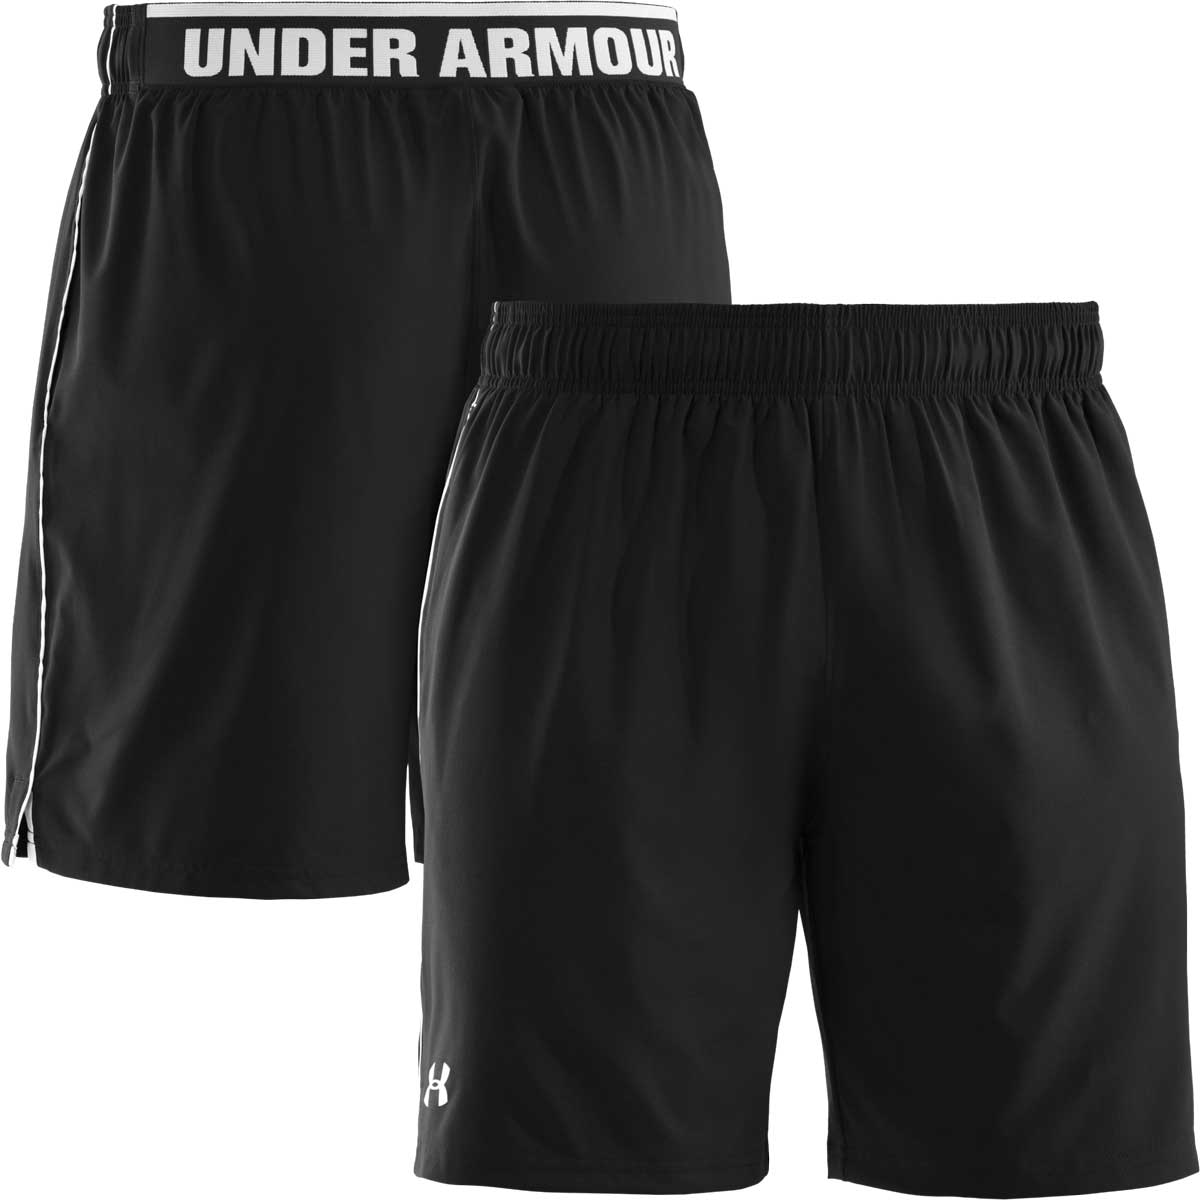 Under Armour Short Heatgear Nero Uomo